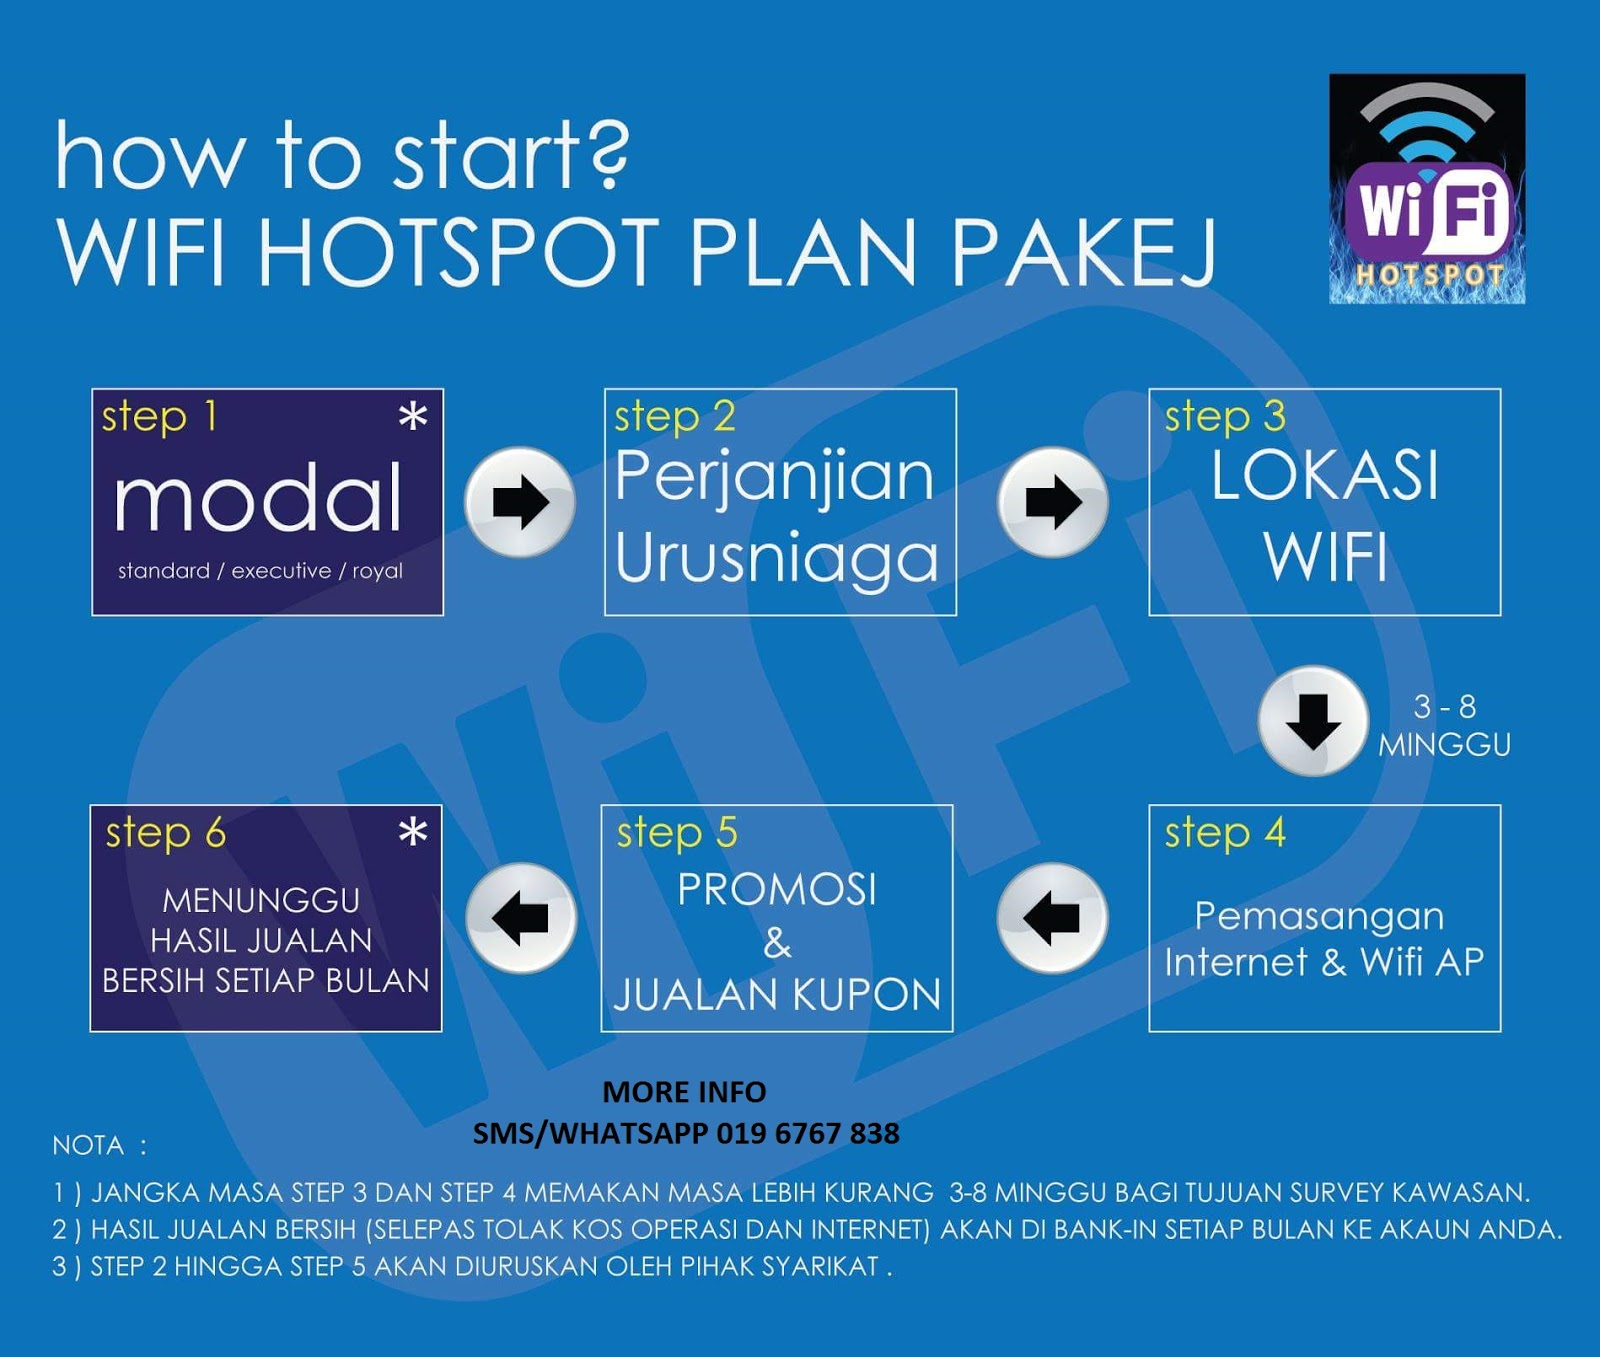 wifi hotspot business plan